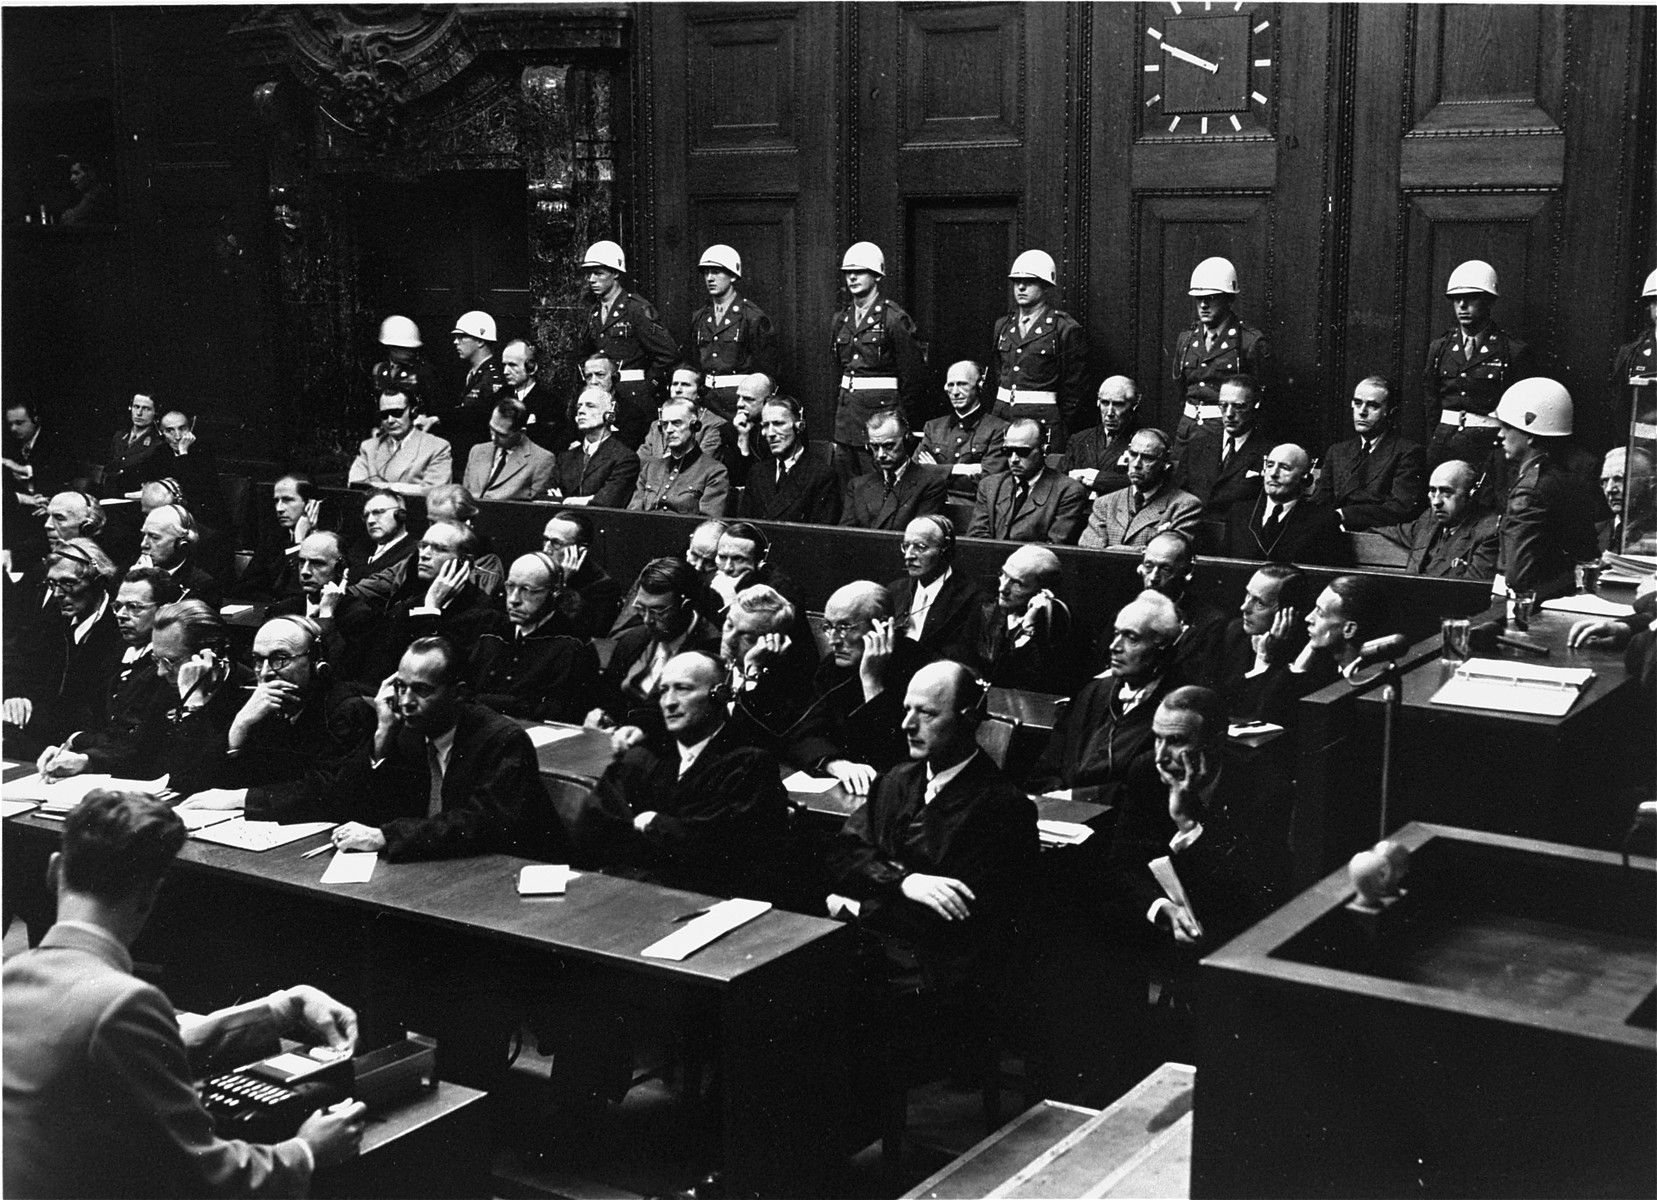 The defendants and their lawyers follow the proceedings at the International Military Tribunal trial of war criminals at Nuremberg.